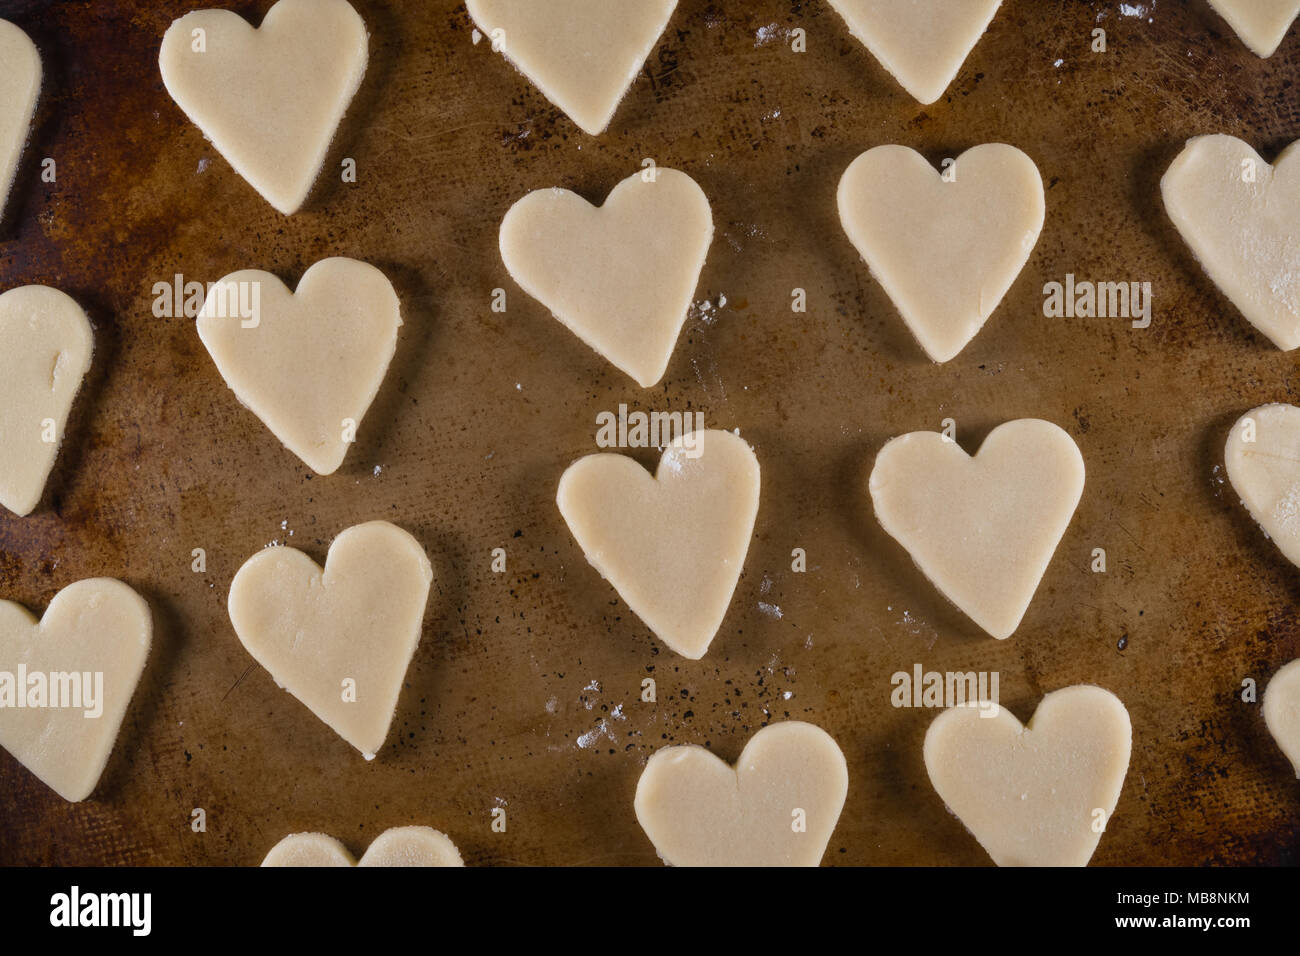 Close Up of Heart Shaped Cookie Dough on Sheet Pan - Stock Image